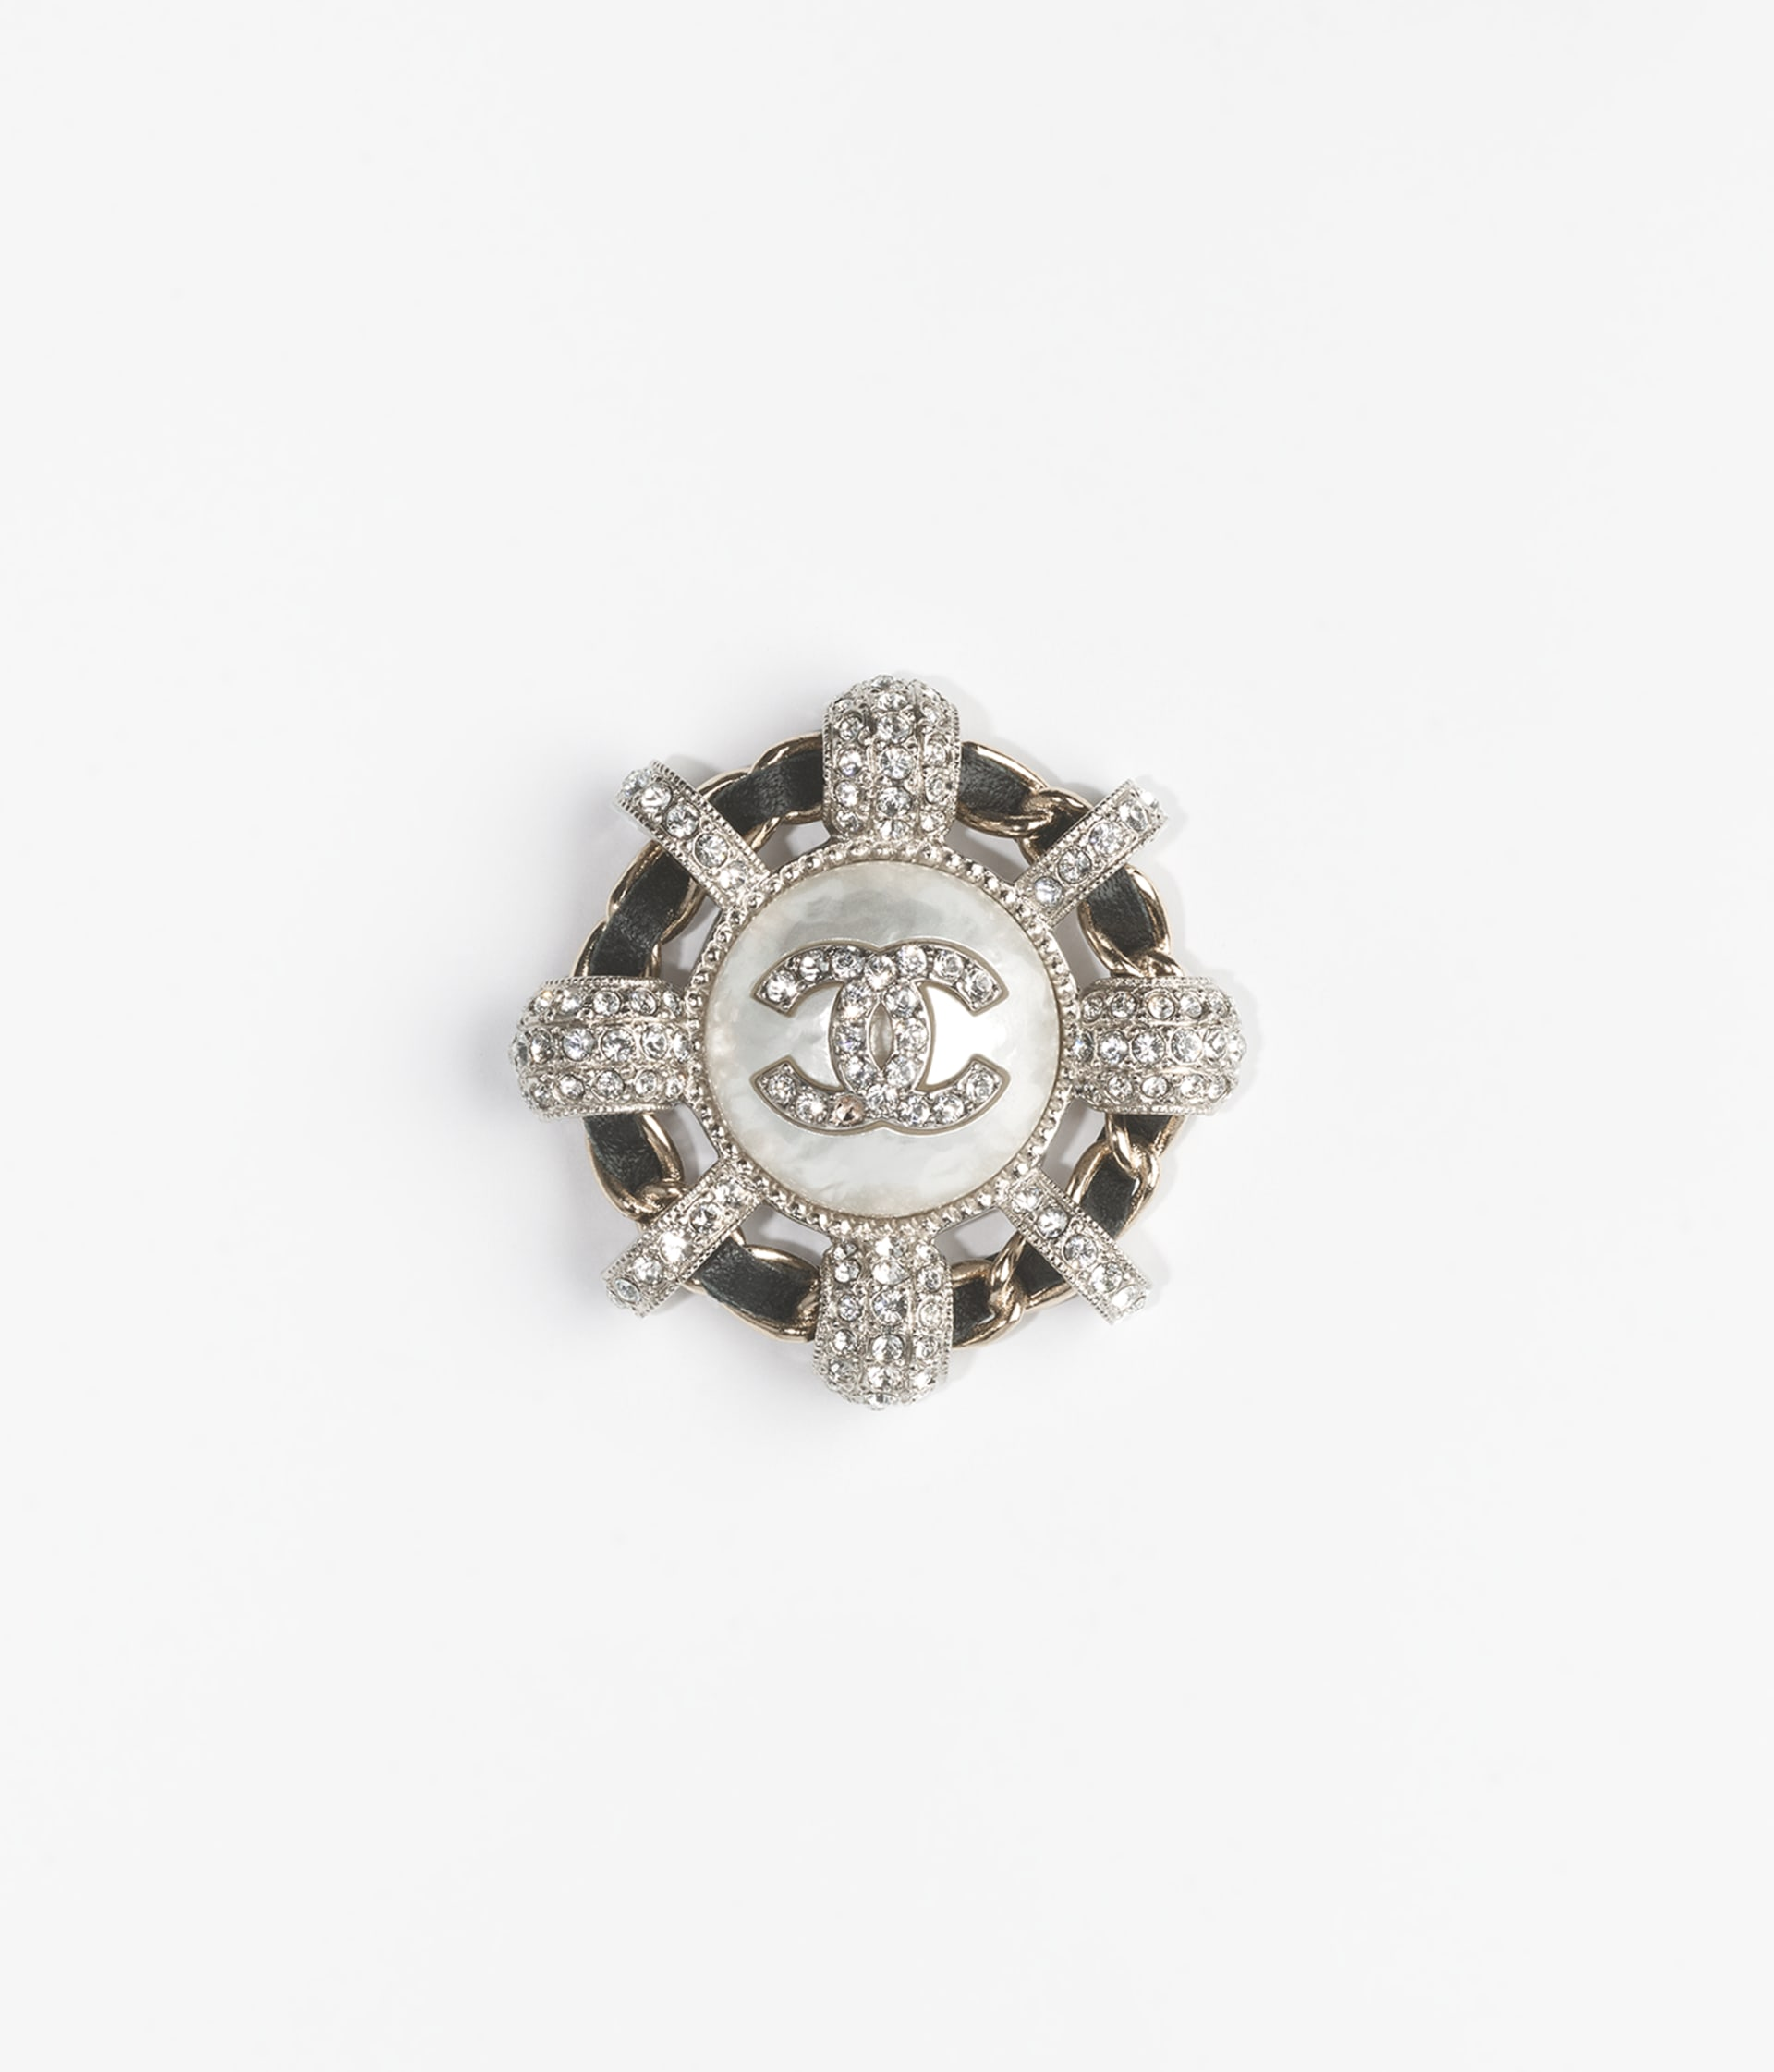 image 1 - Brooch - Metal, Calfskin, Imitation Pearls & Strass - Gold, Silver, Black, Pearly White & Crystal